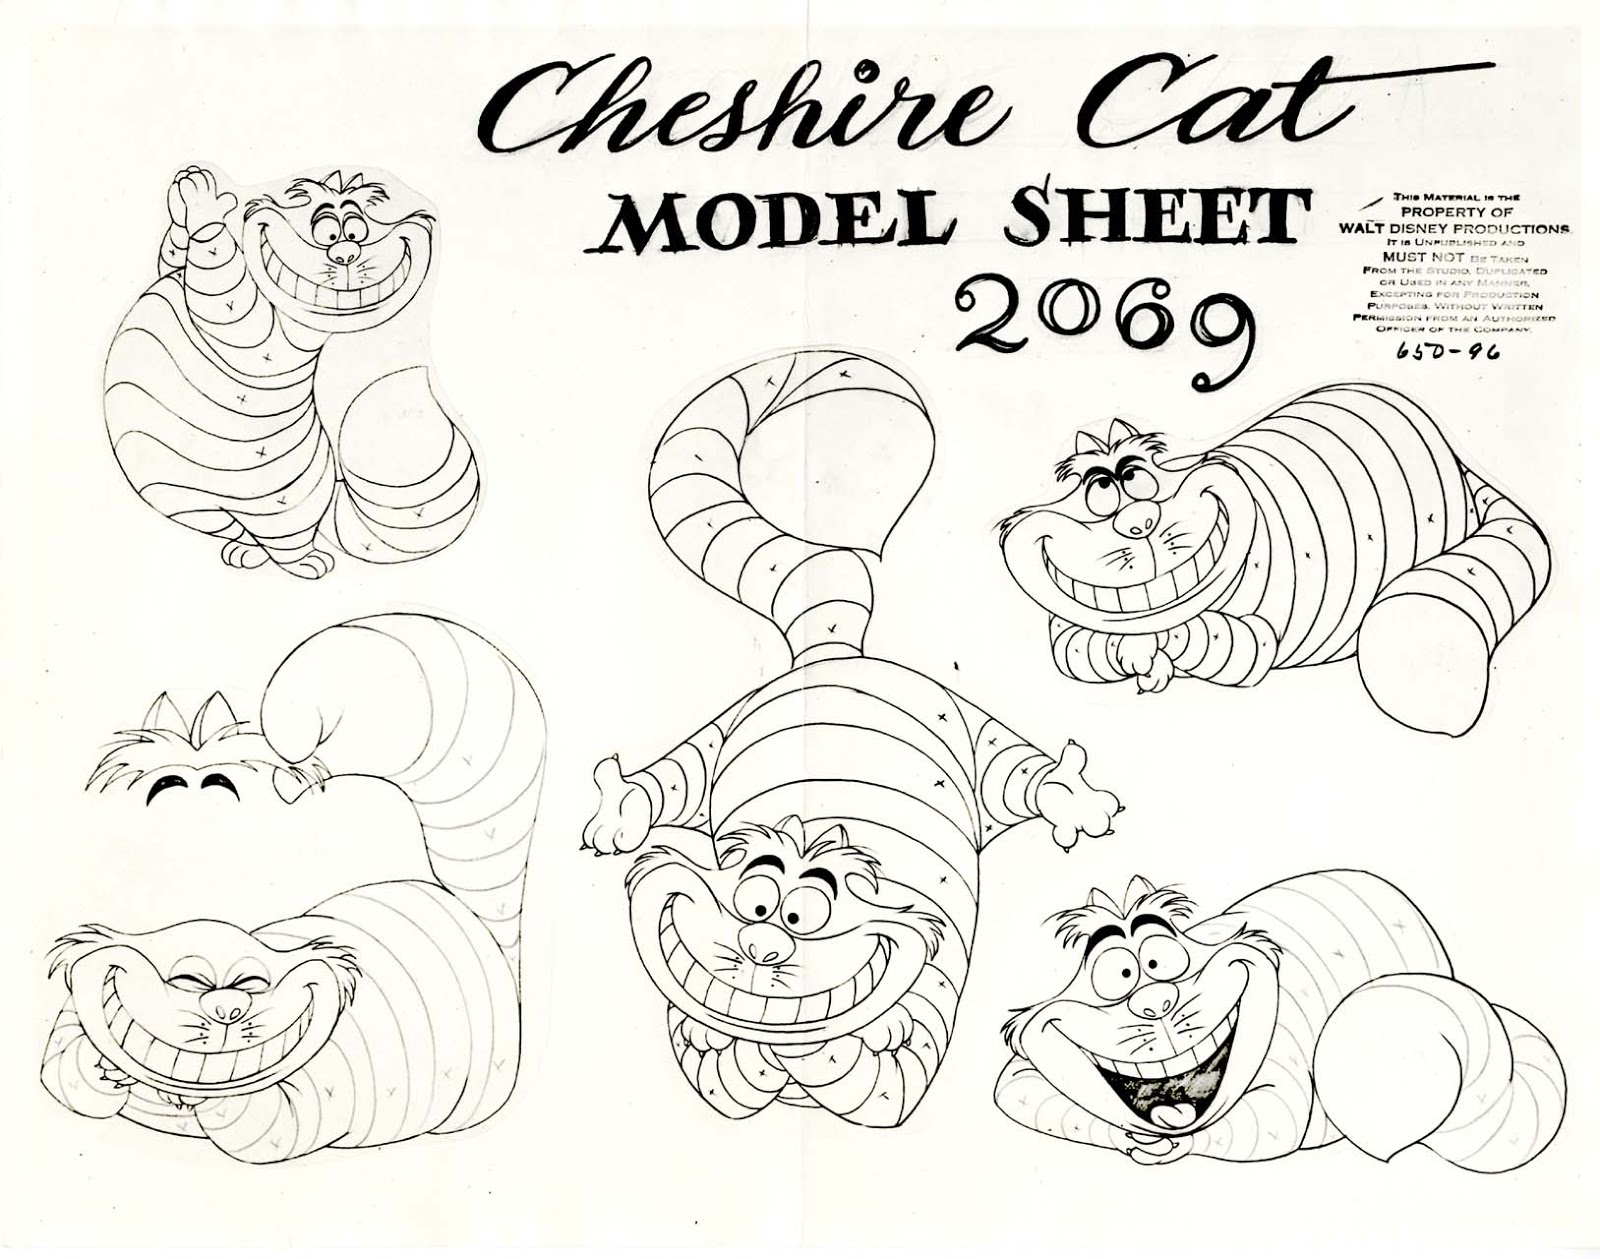 Character Design From The Ground Up Download : Vintage disney alice in wonderland animation model sheet